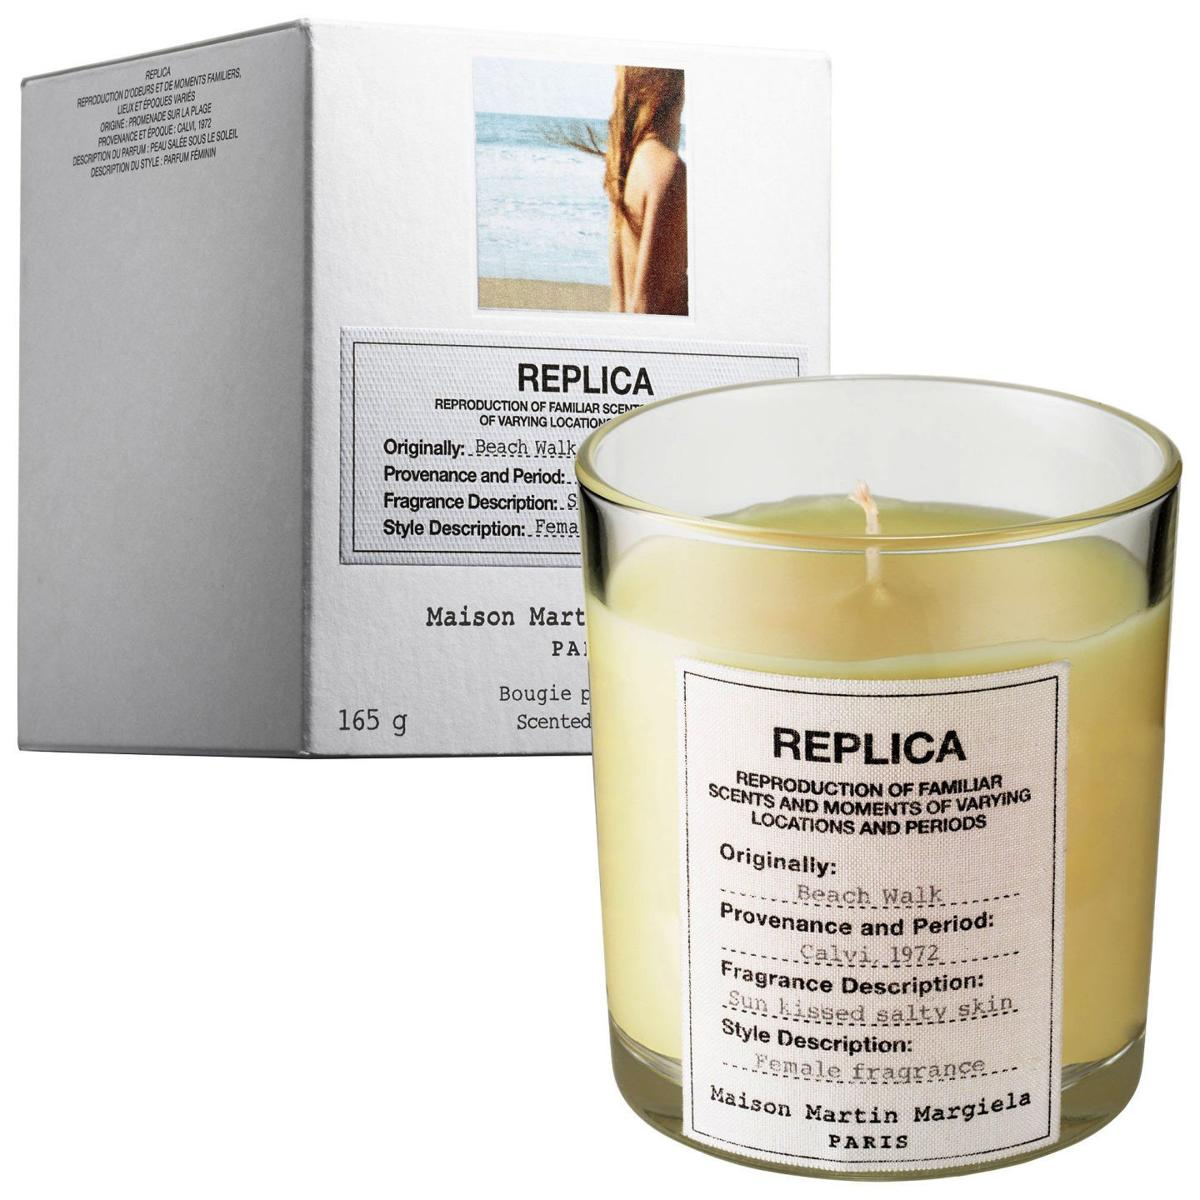 LIFE HOME-OW-TO-BUY-SCENTED-CANDLES 2 TB